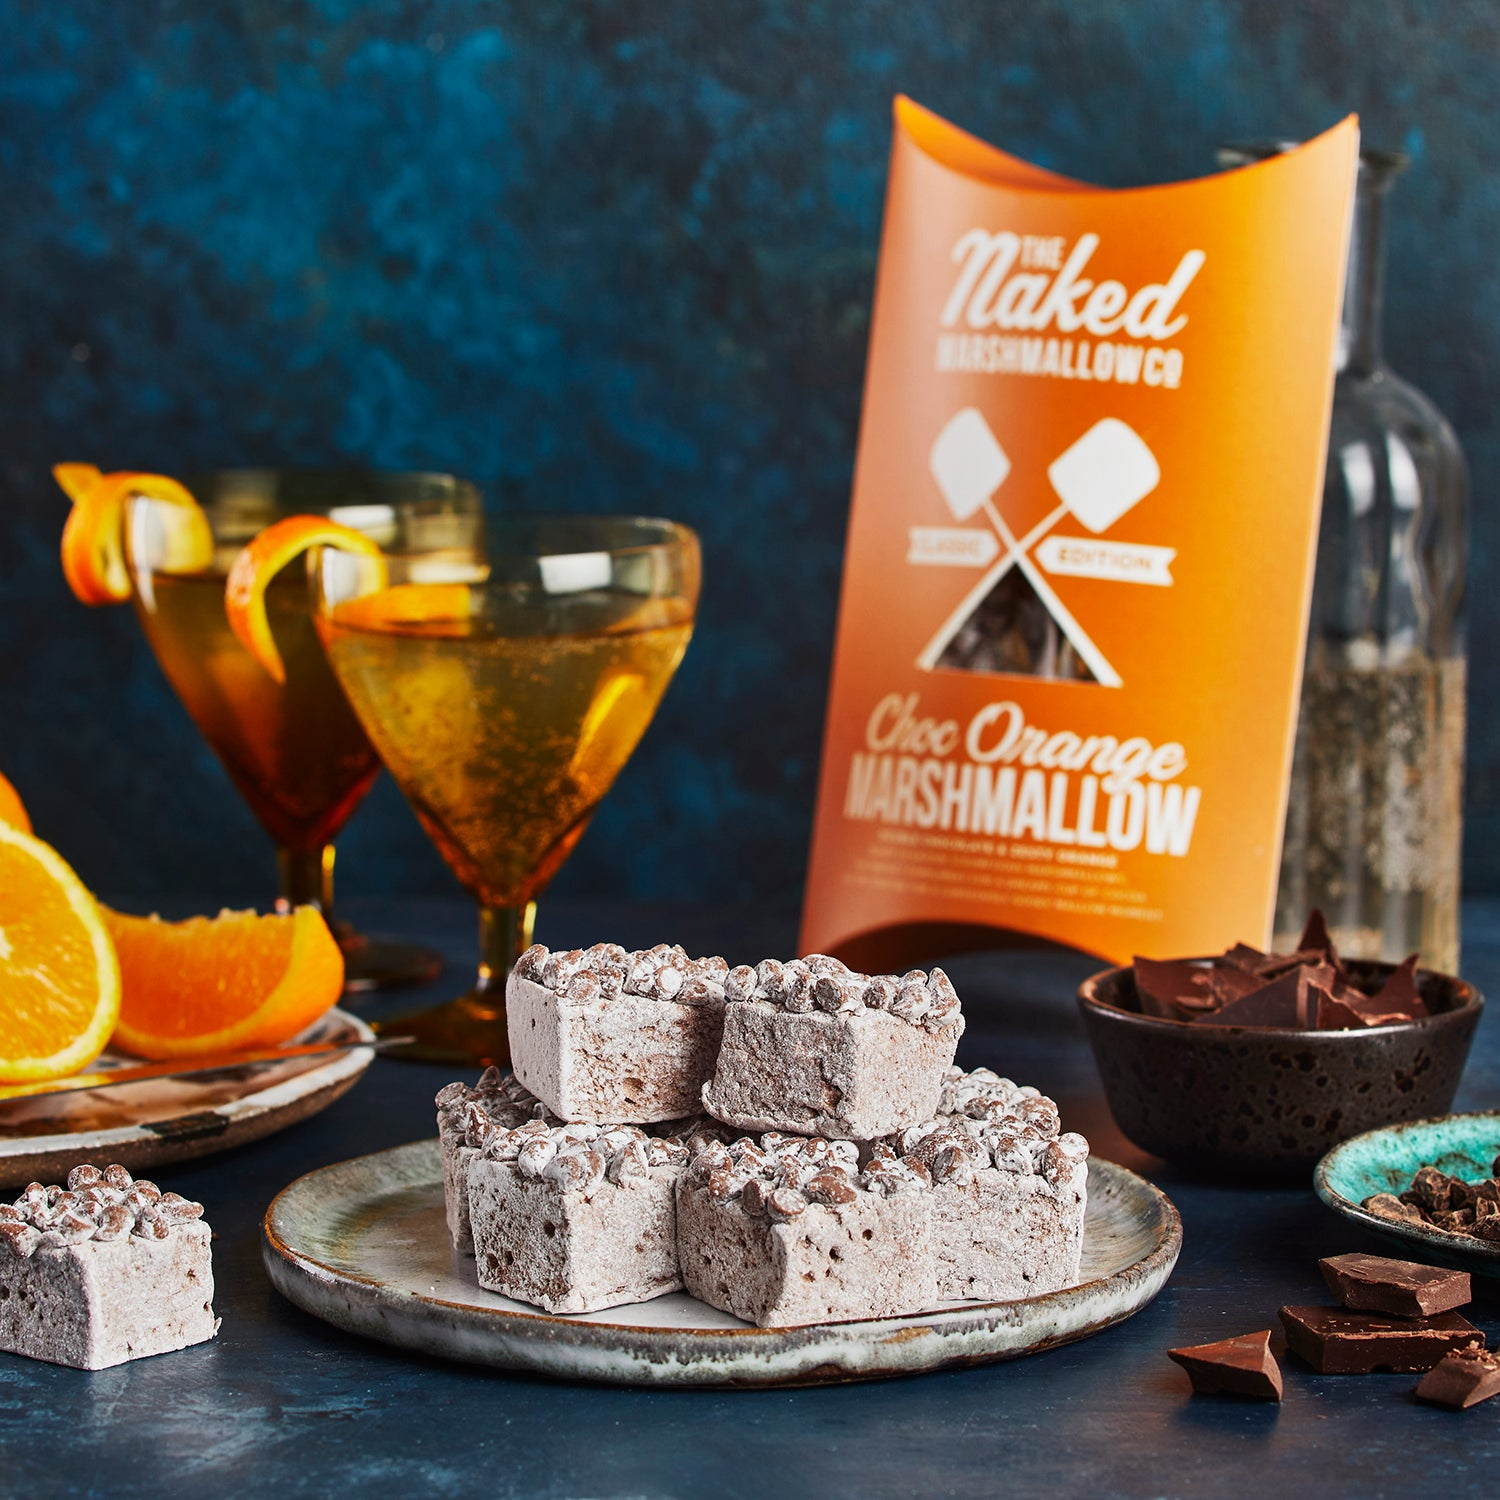 Choc Orange Gourmet Marshmallows